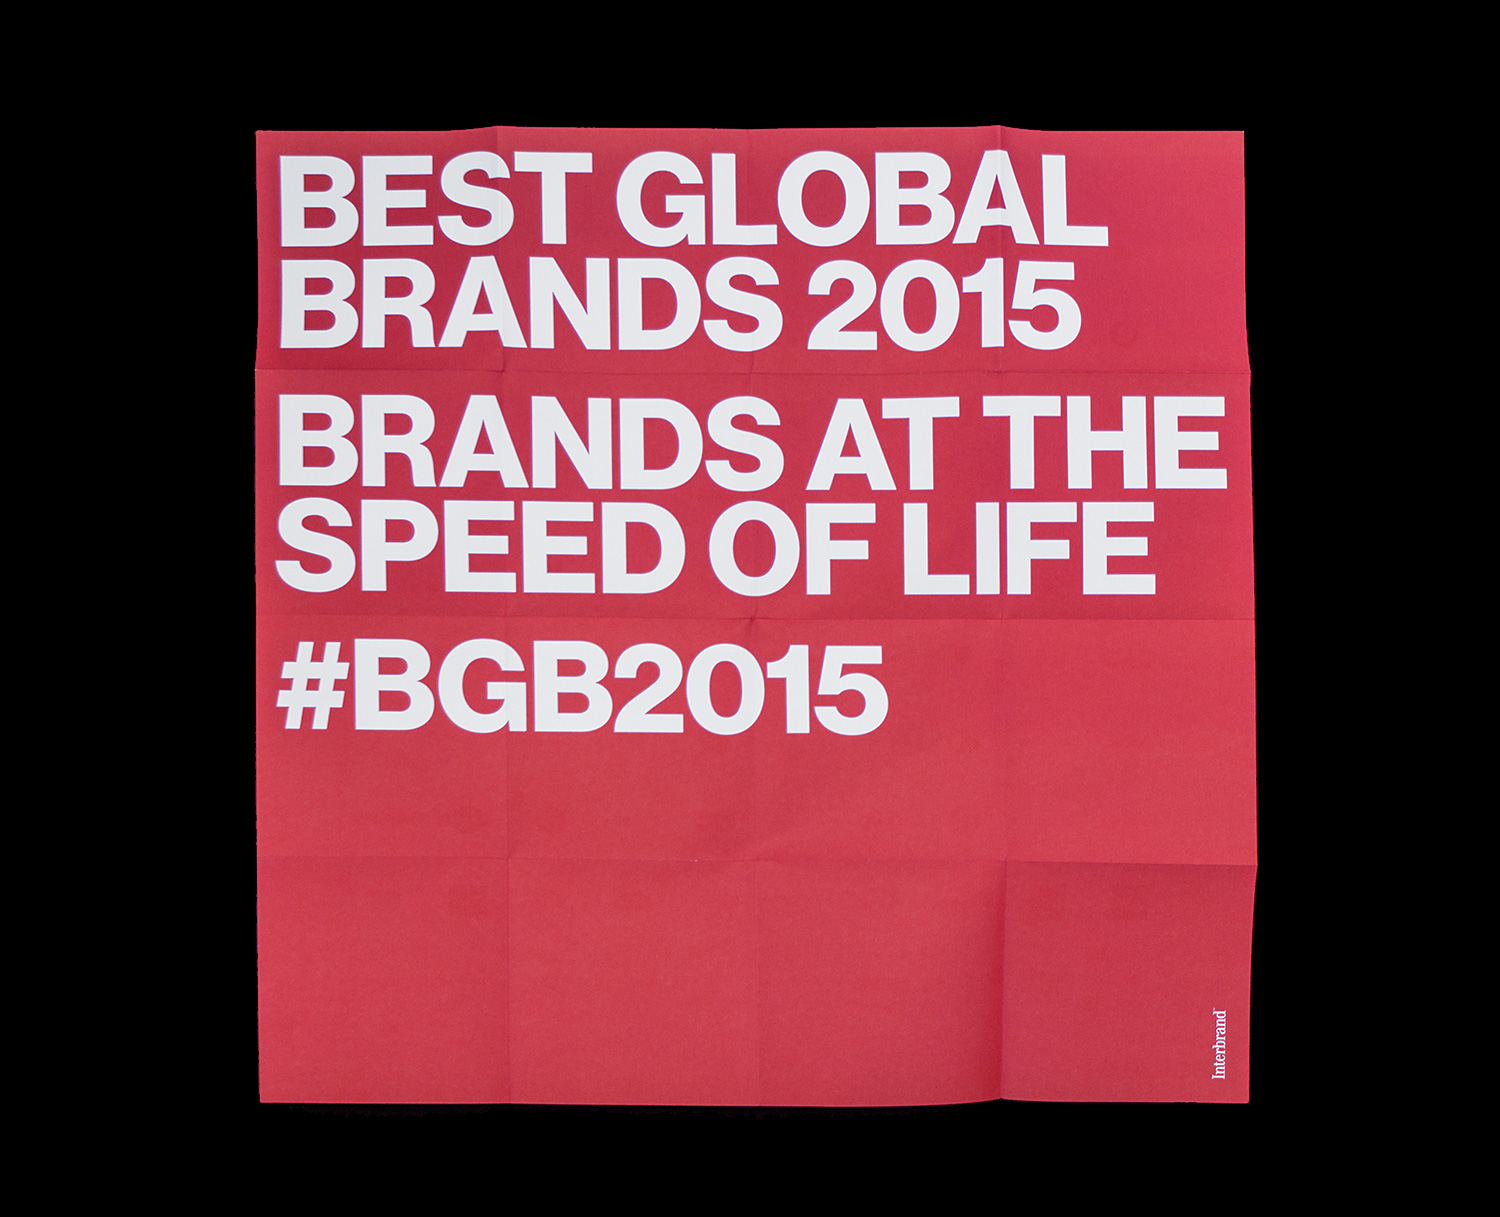 Matthijs, Matt van Leeuwen, Kozue Yamada, Best Global Brands 2015, Posters, Interbrand, Whitney Museum of American Art